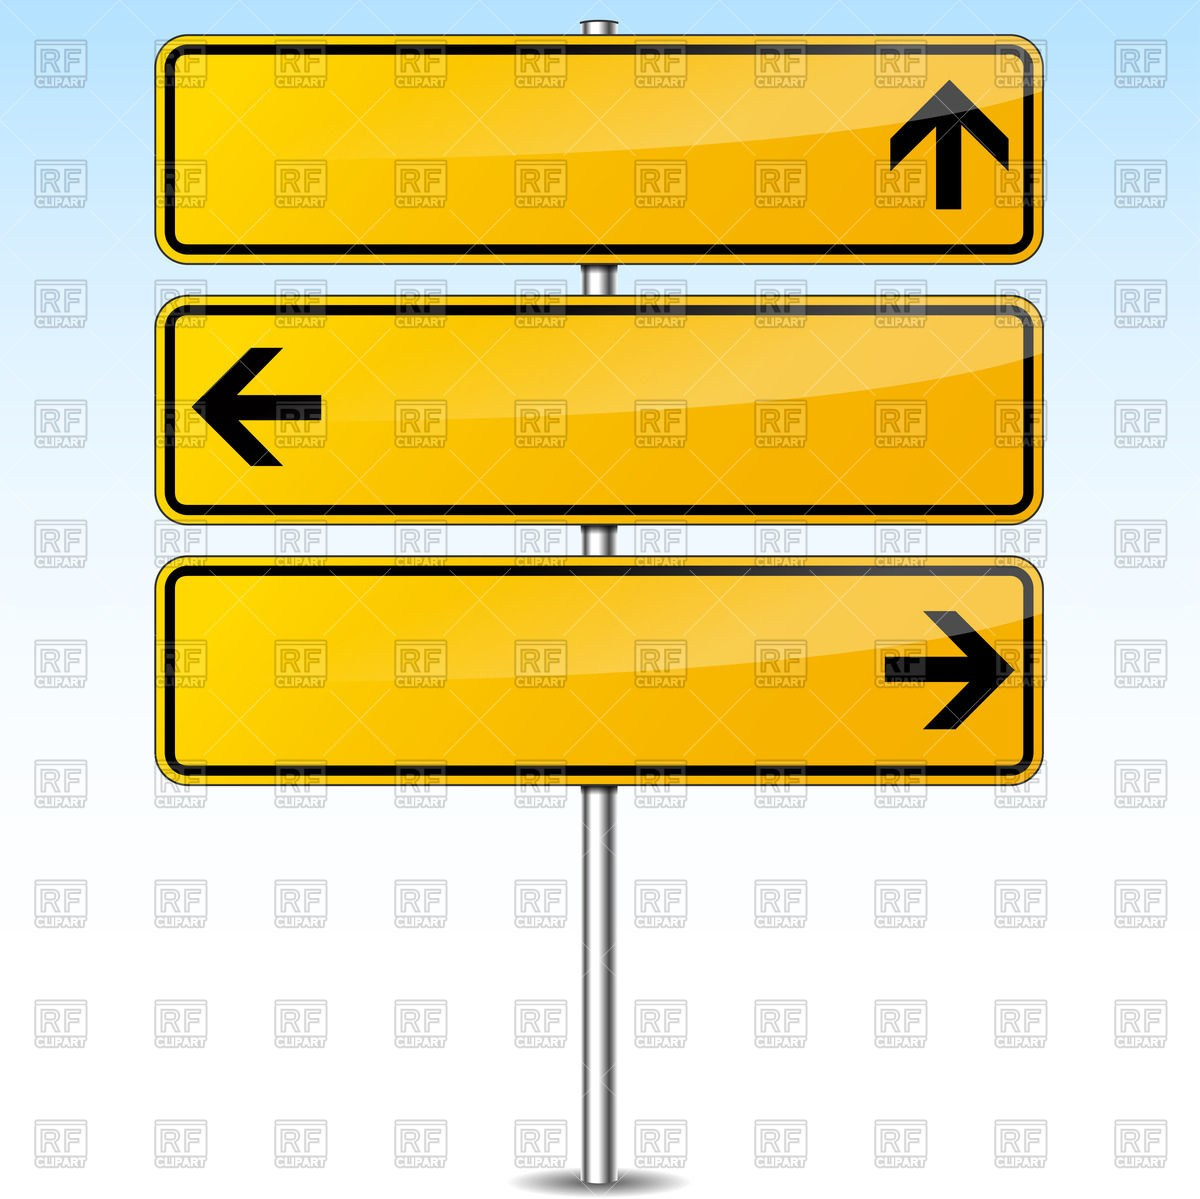 Blank road sign arrow clipart picture library stock Road Sign Template. blue empty road sign template for text on silver ... picture library stock